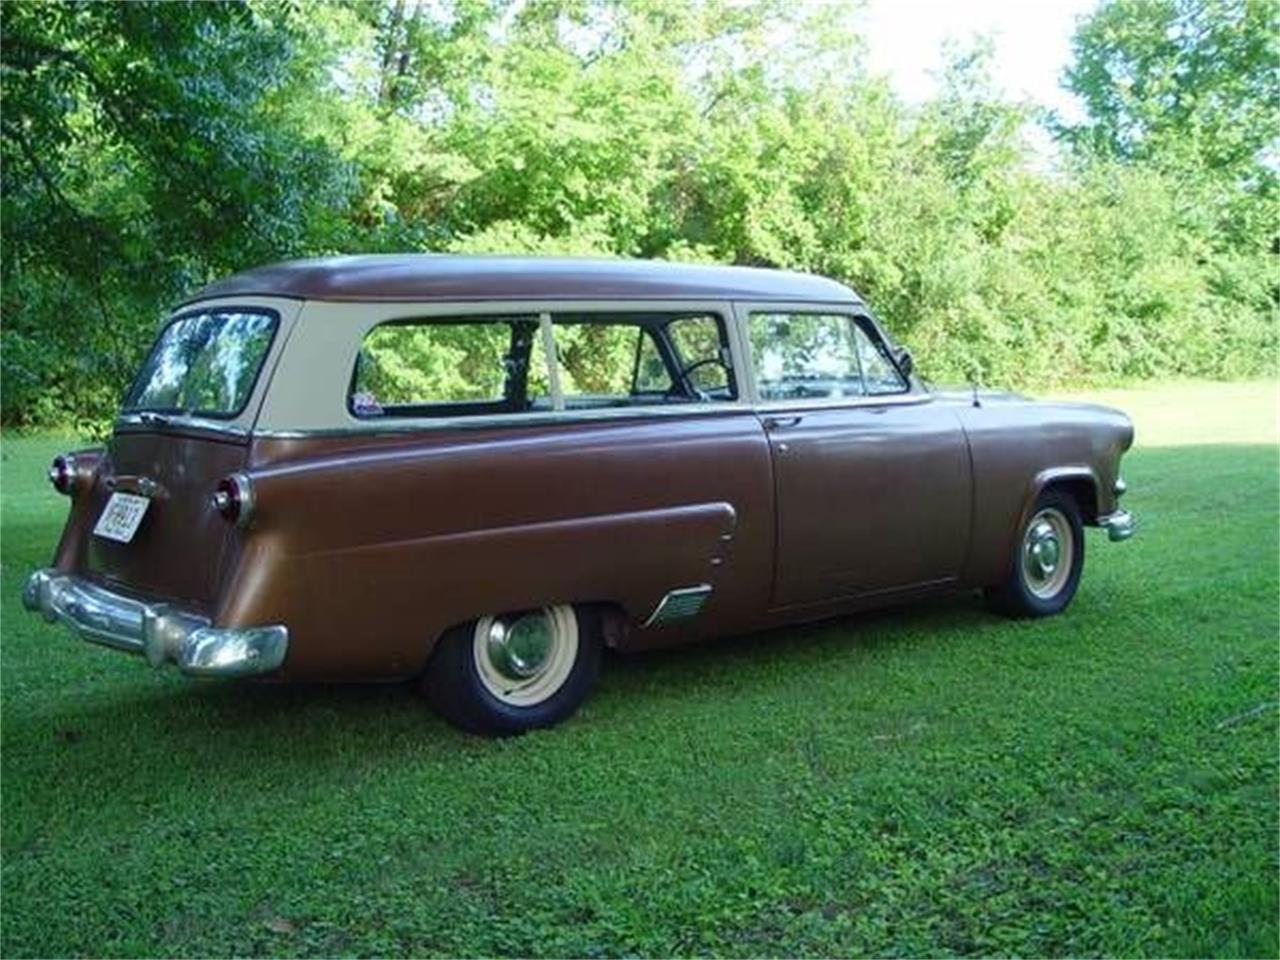 1953 Ford Ranch Wagon for sale in Cadillac, MI – photo 12